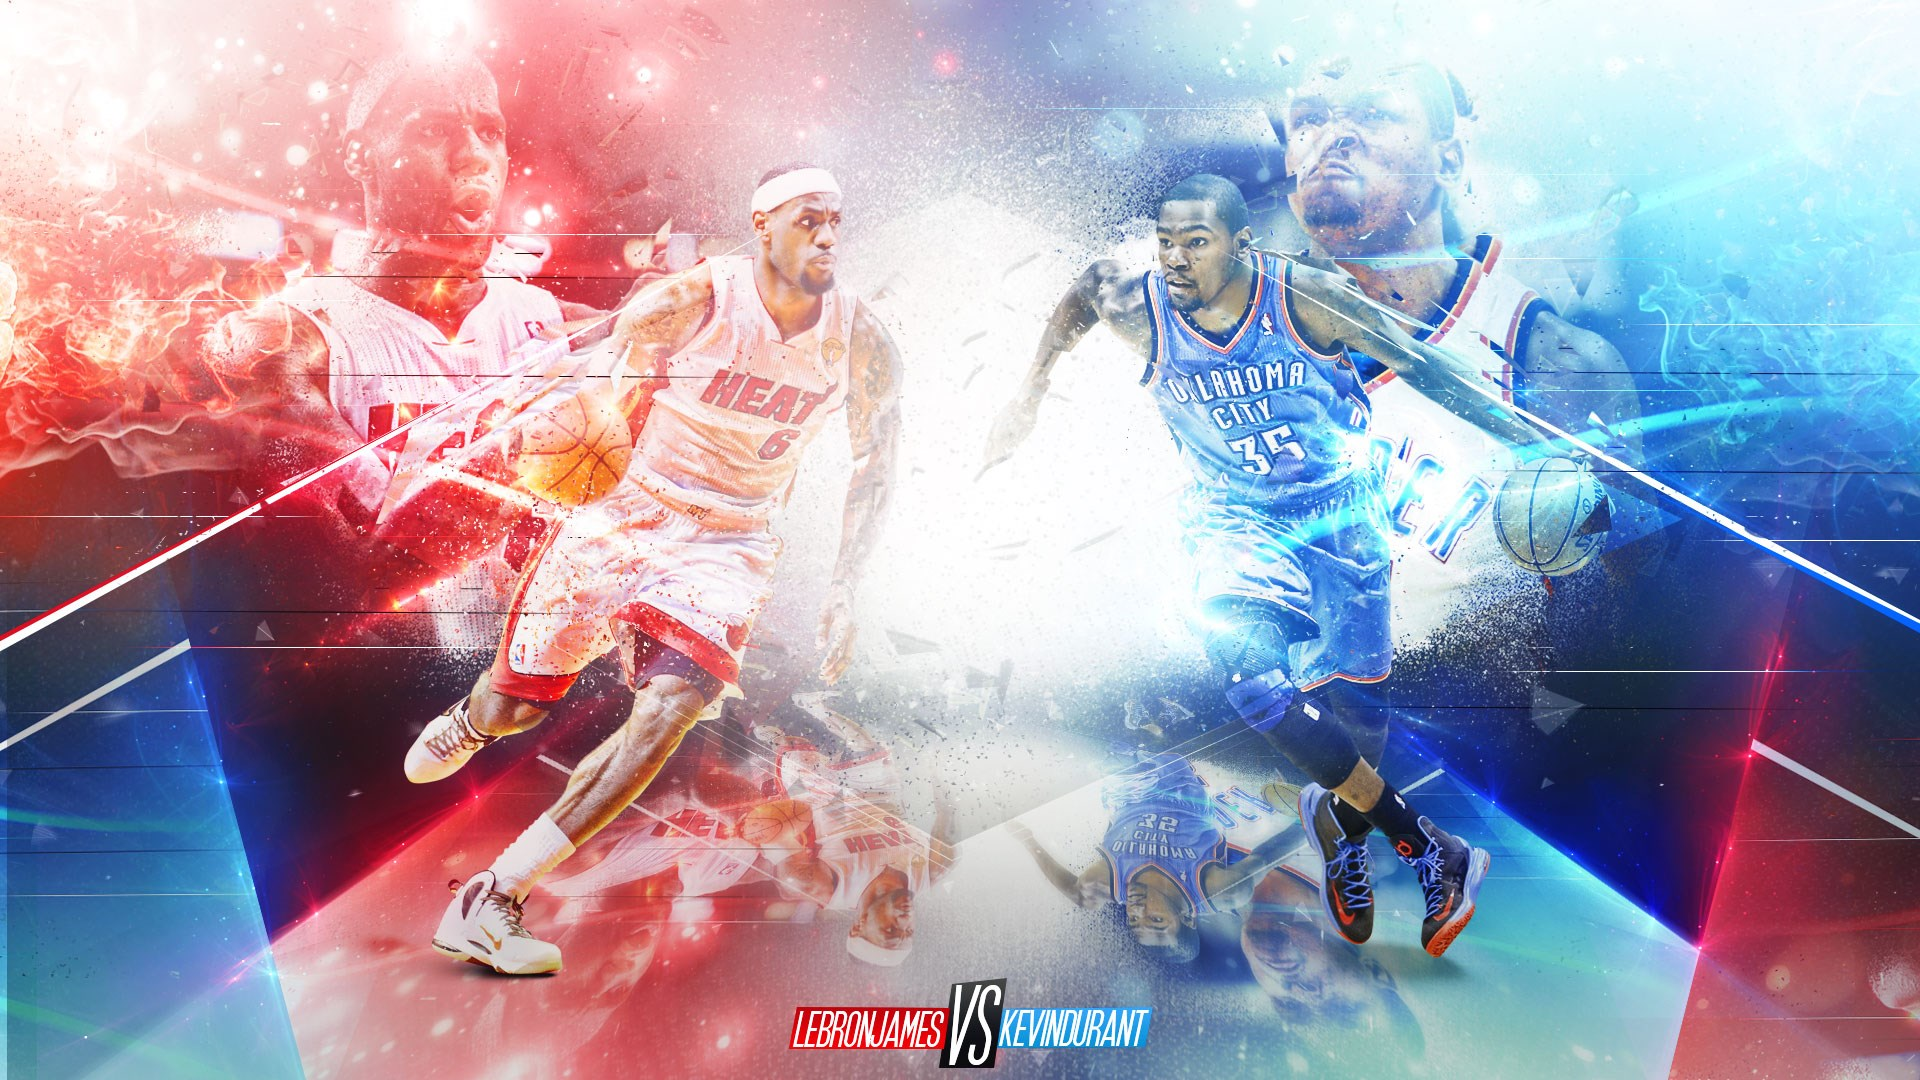 1920-x-1080-px-images-kevin-durant-by-Chambers-Brook-for-TW-com-wallpaper-wpc920590